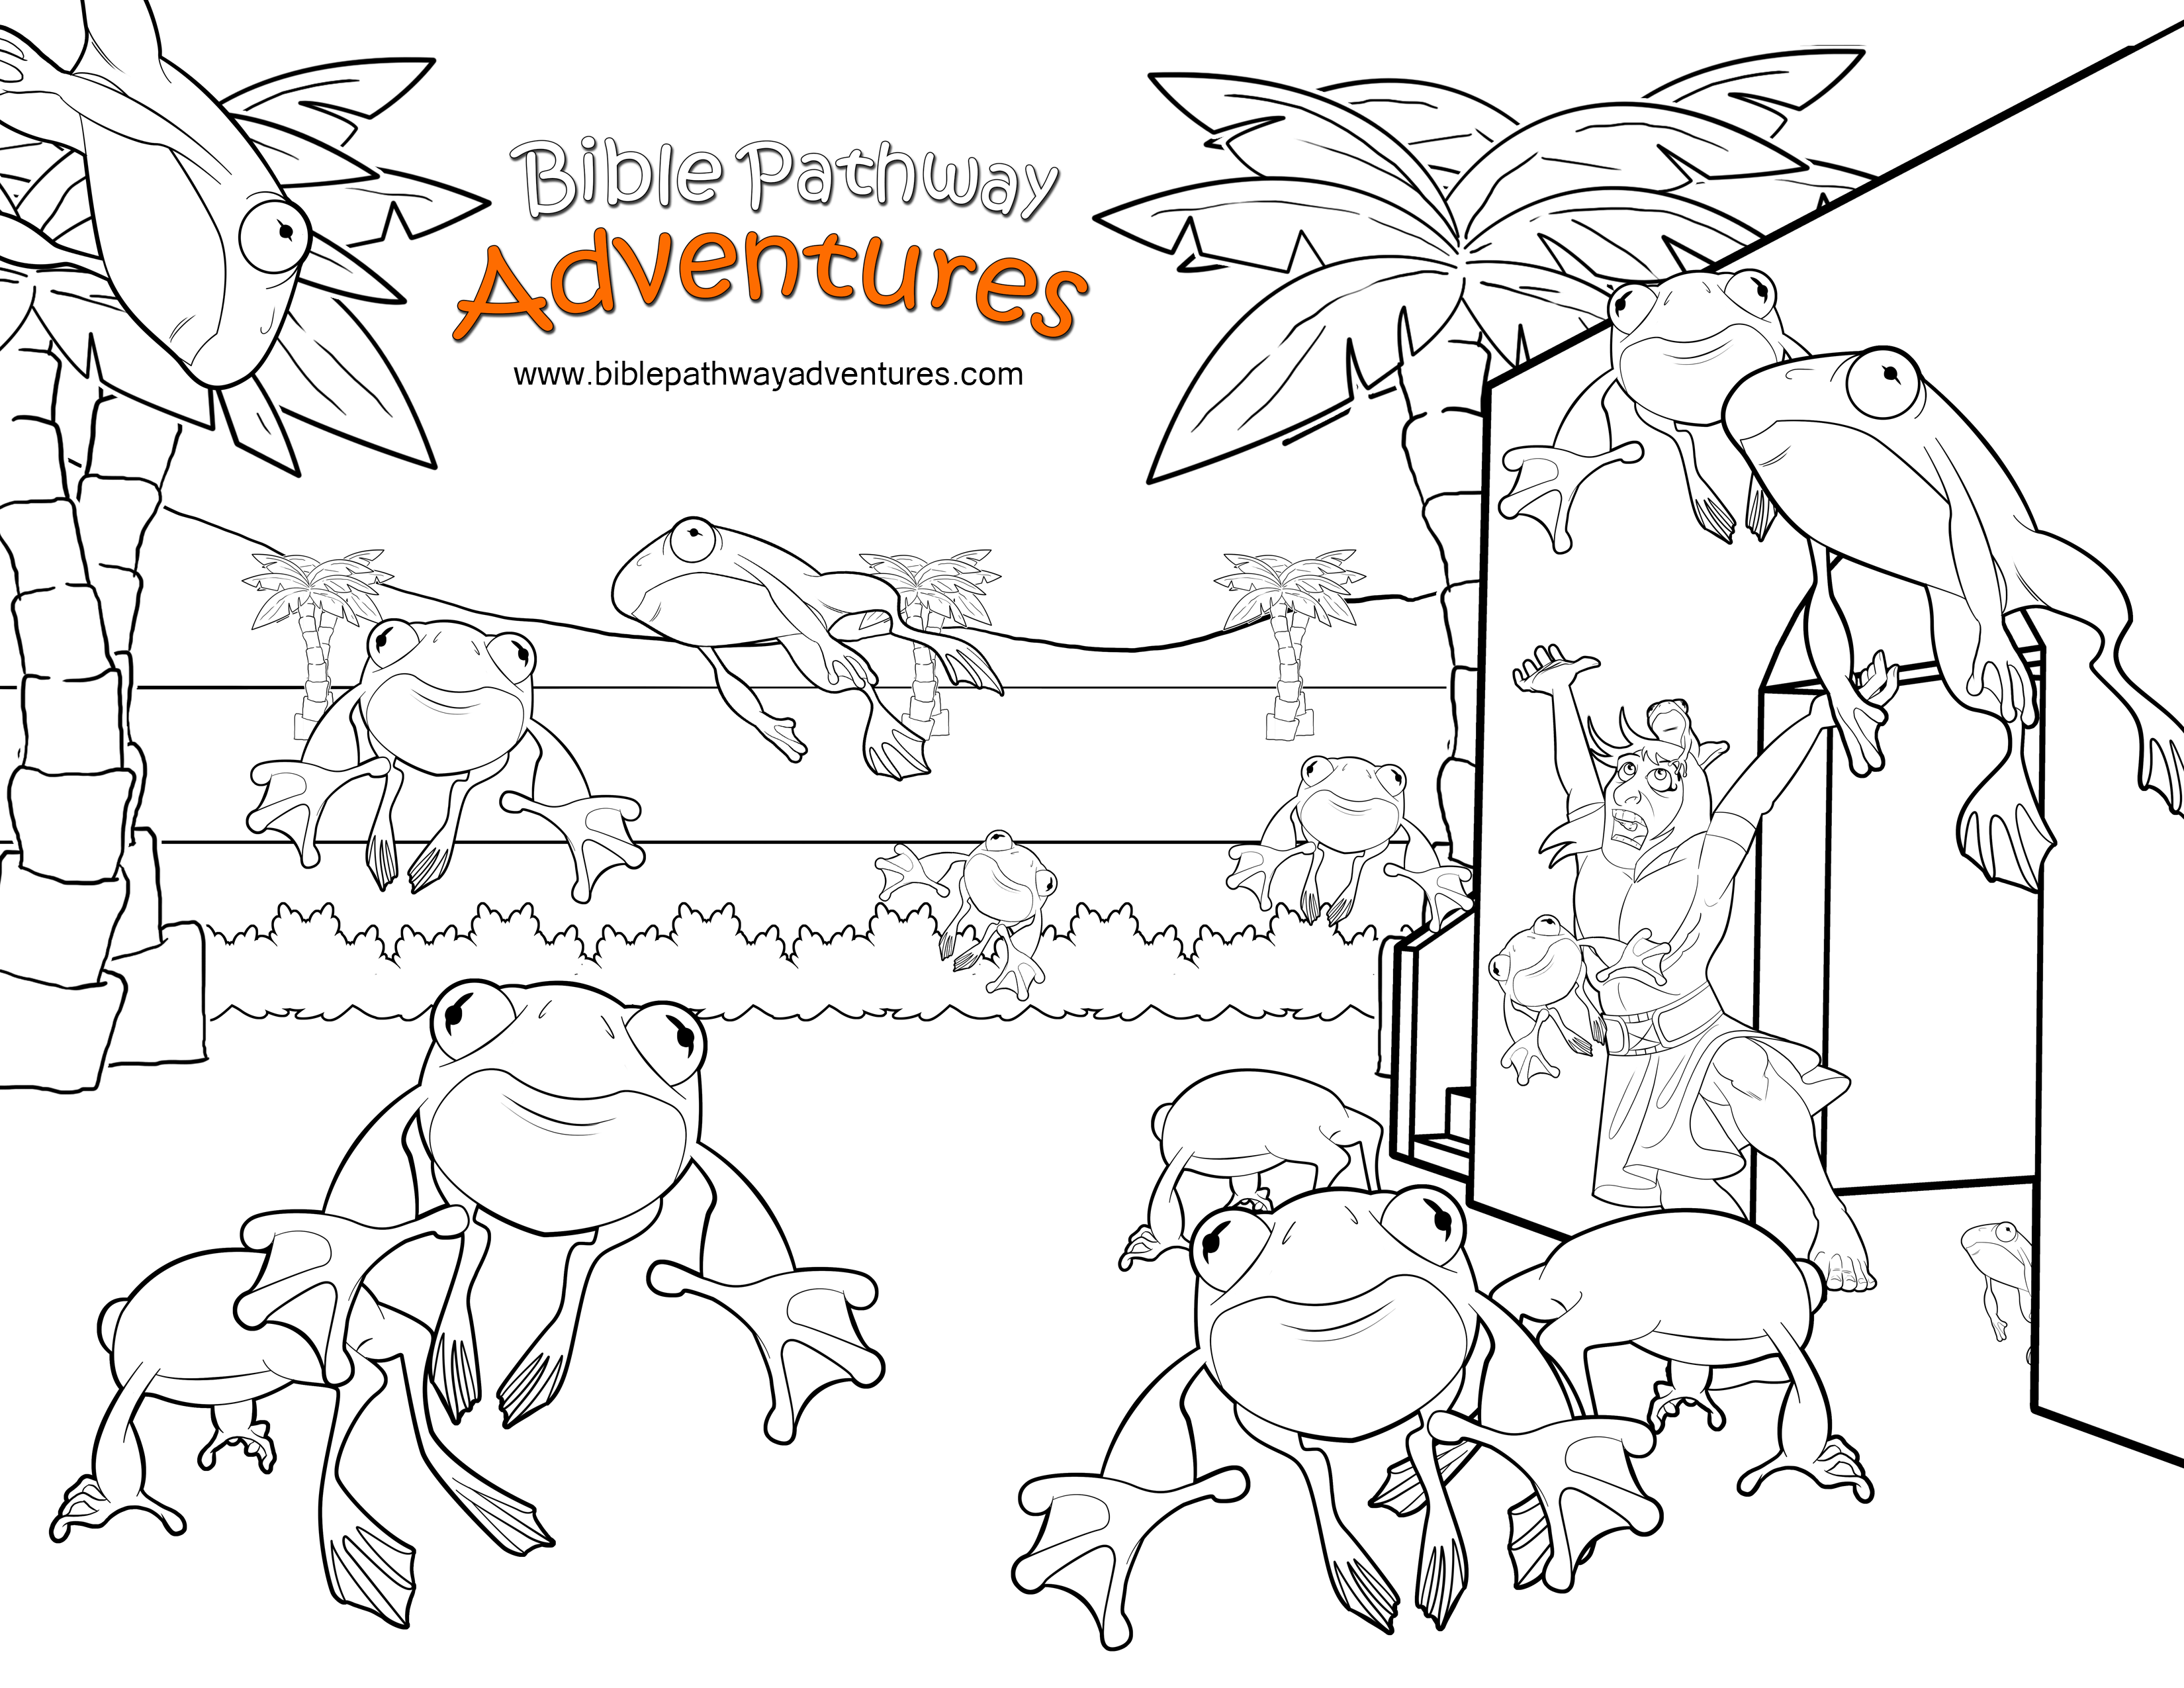 plague of frogs coloring page torah tots parsha on parade vaera frogs2htm coloring page frogs coloring of plague page